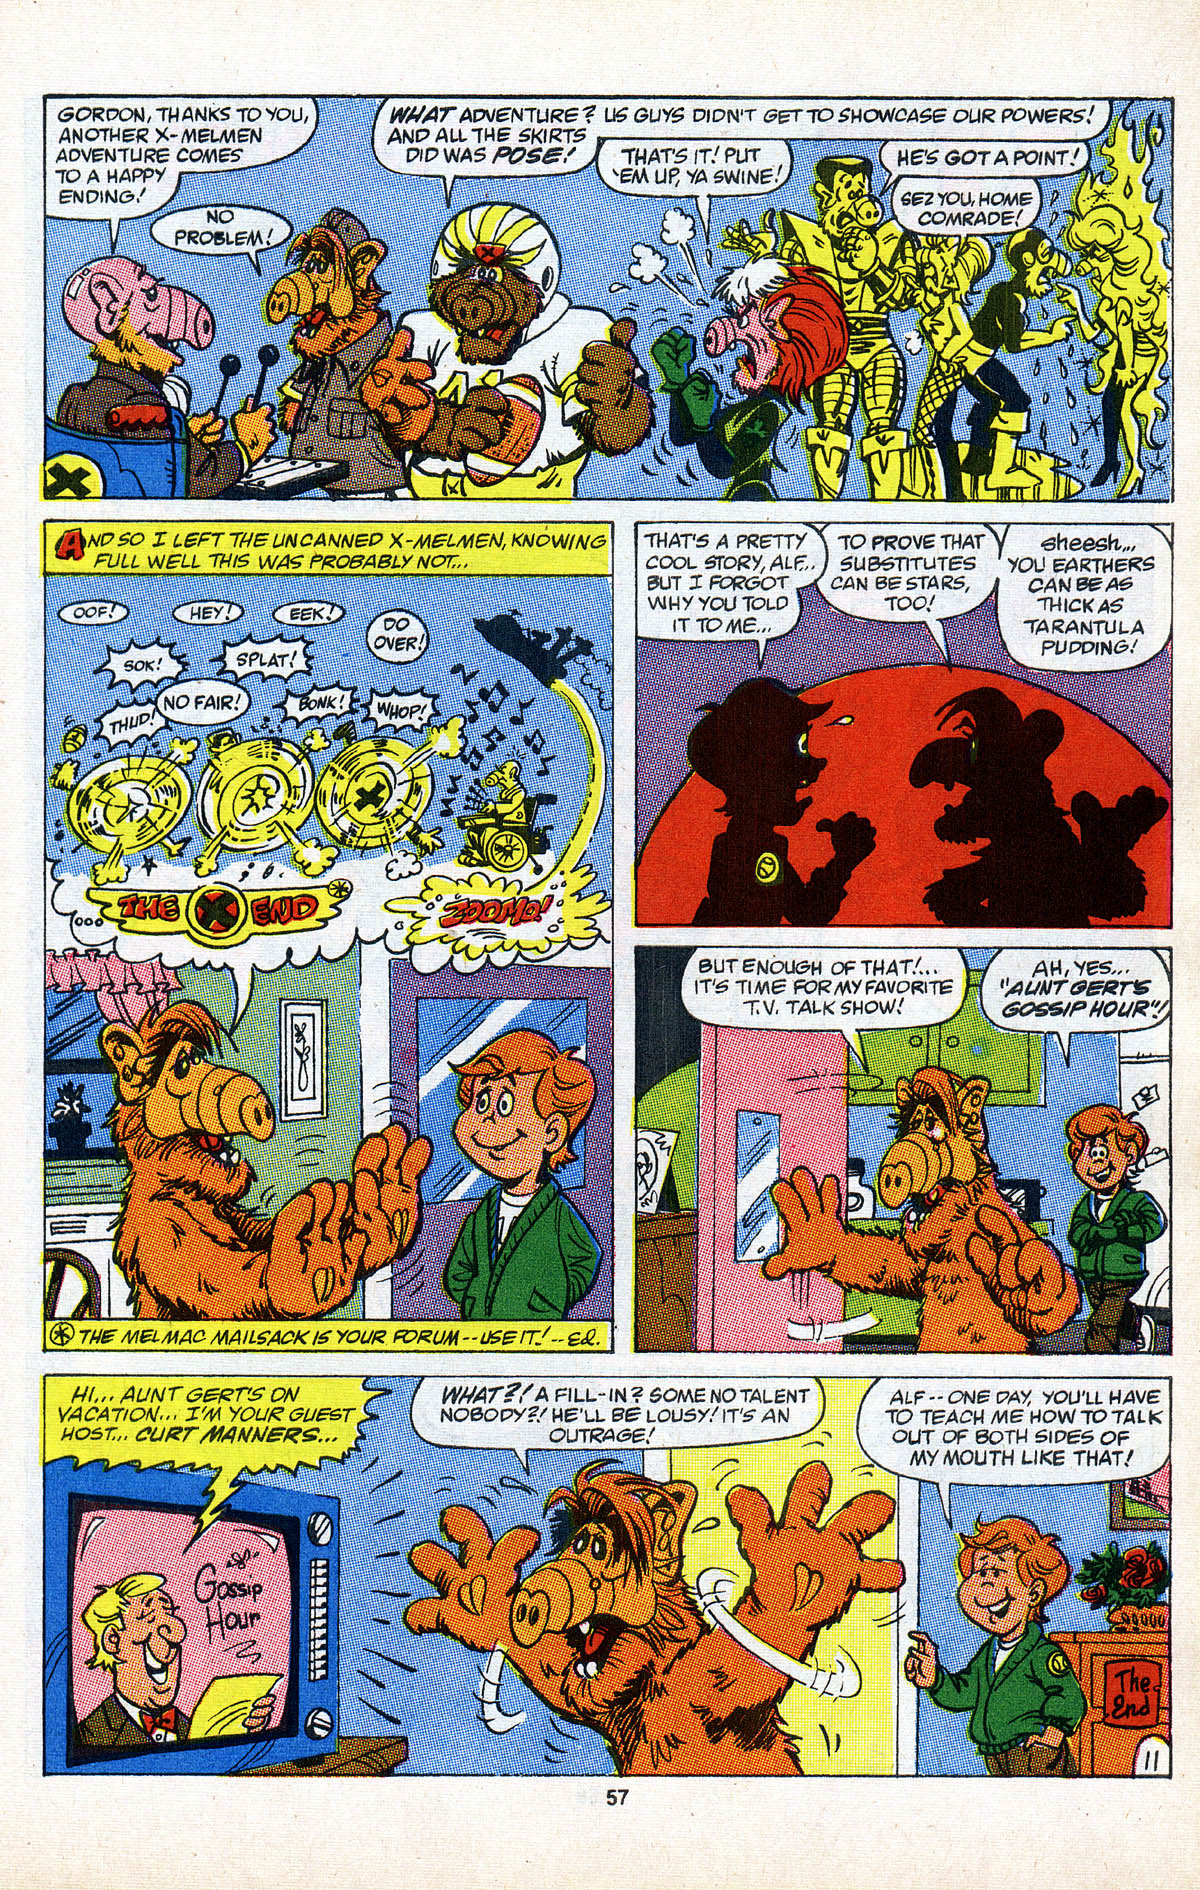 Read online ALF comic -  Issue #2 - 58